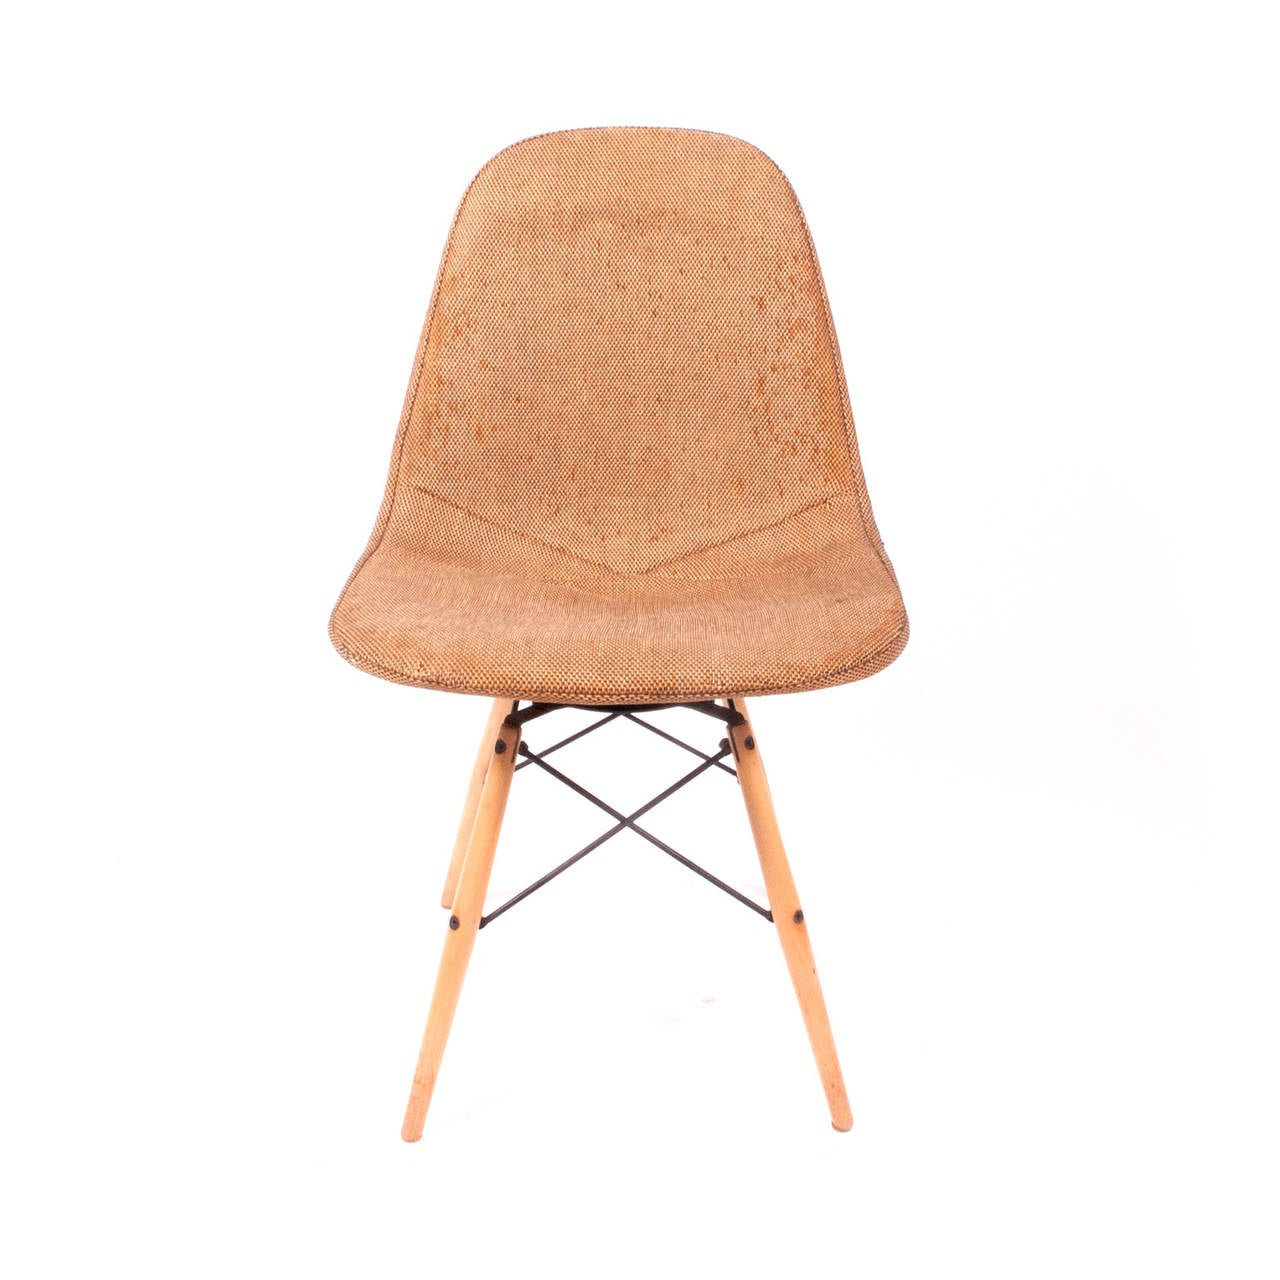 original pkw charles eames dowel leg swivel chair for sale at 1stdibs. Black Bedroom Furniture Sets. Home Design Ideas